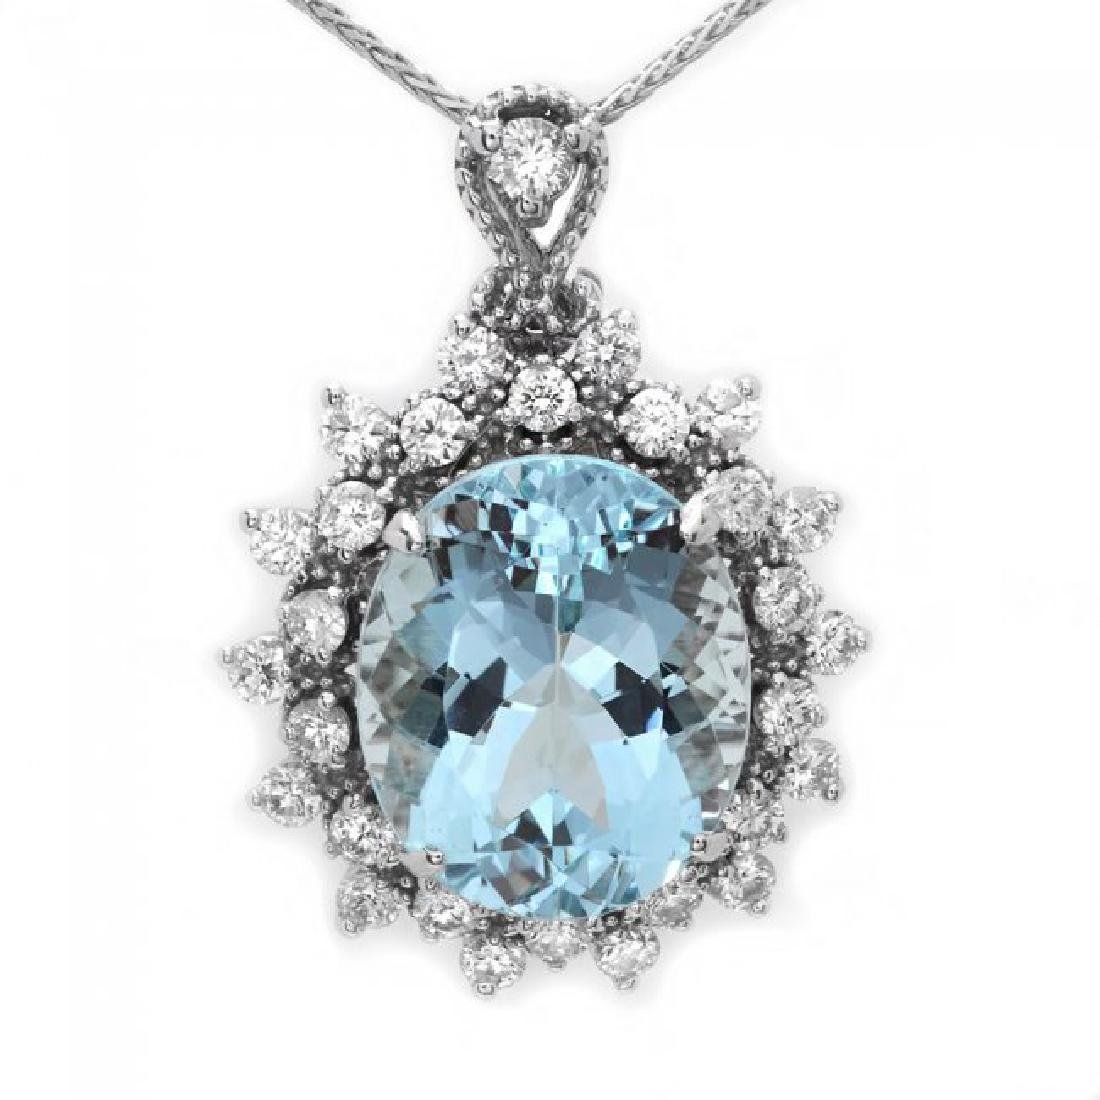 14k Gold 5.50ct Aquamarine 0.80ct Diamond Pendant - 2